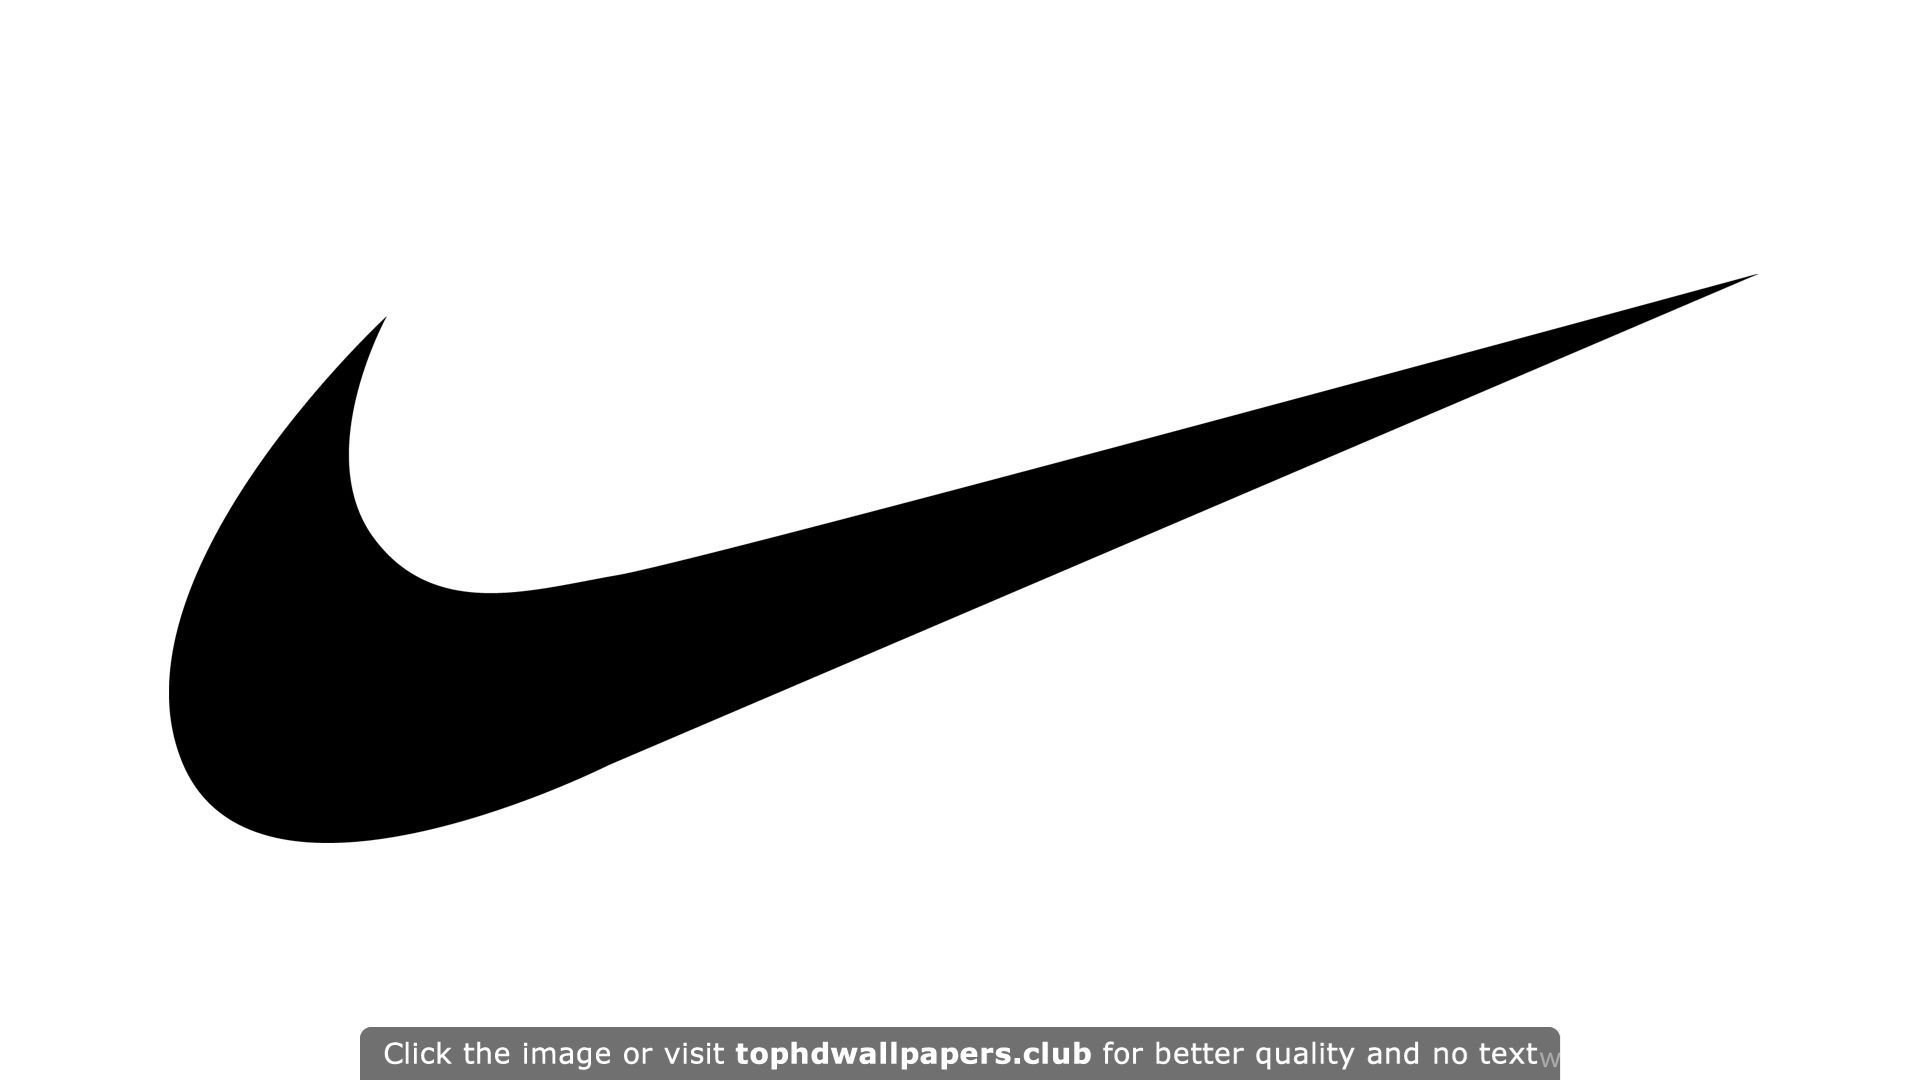 1920x1080 logo nike color - black nike logo 4k or hd wallpapers for your pc mac or  mobile